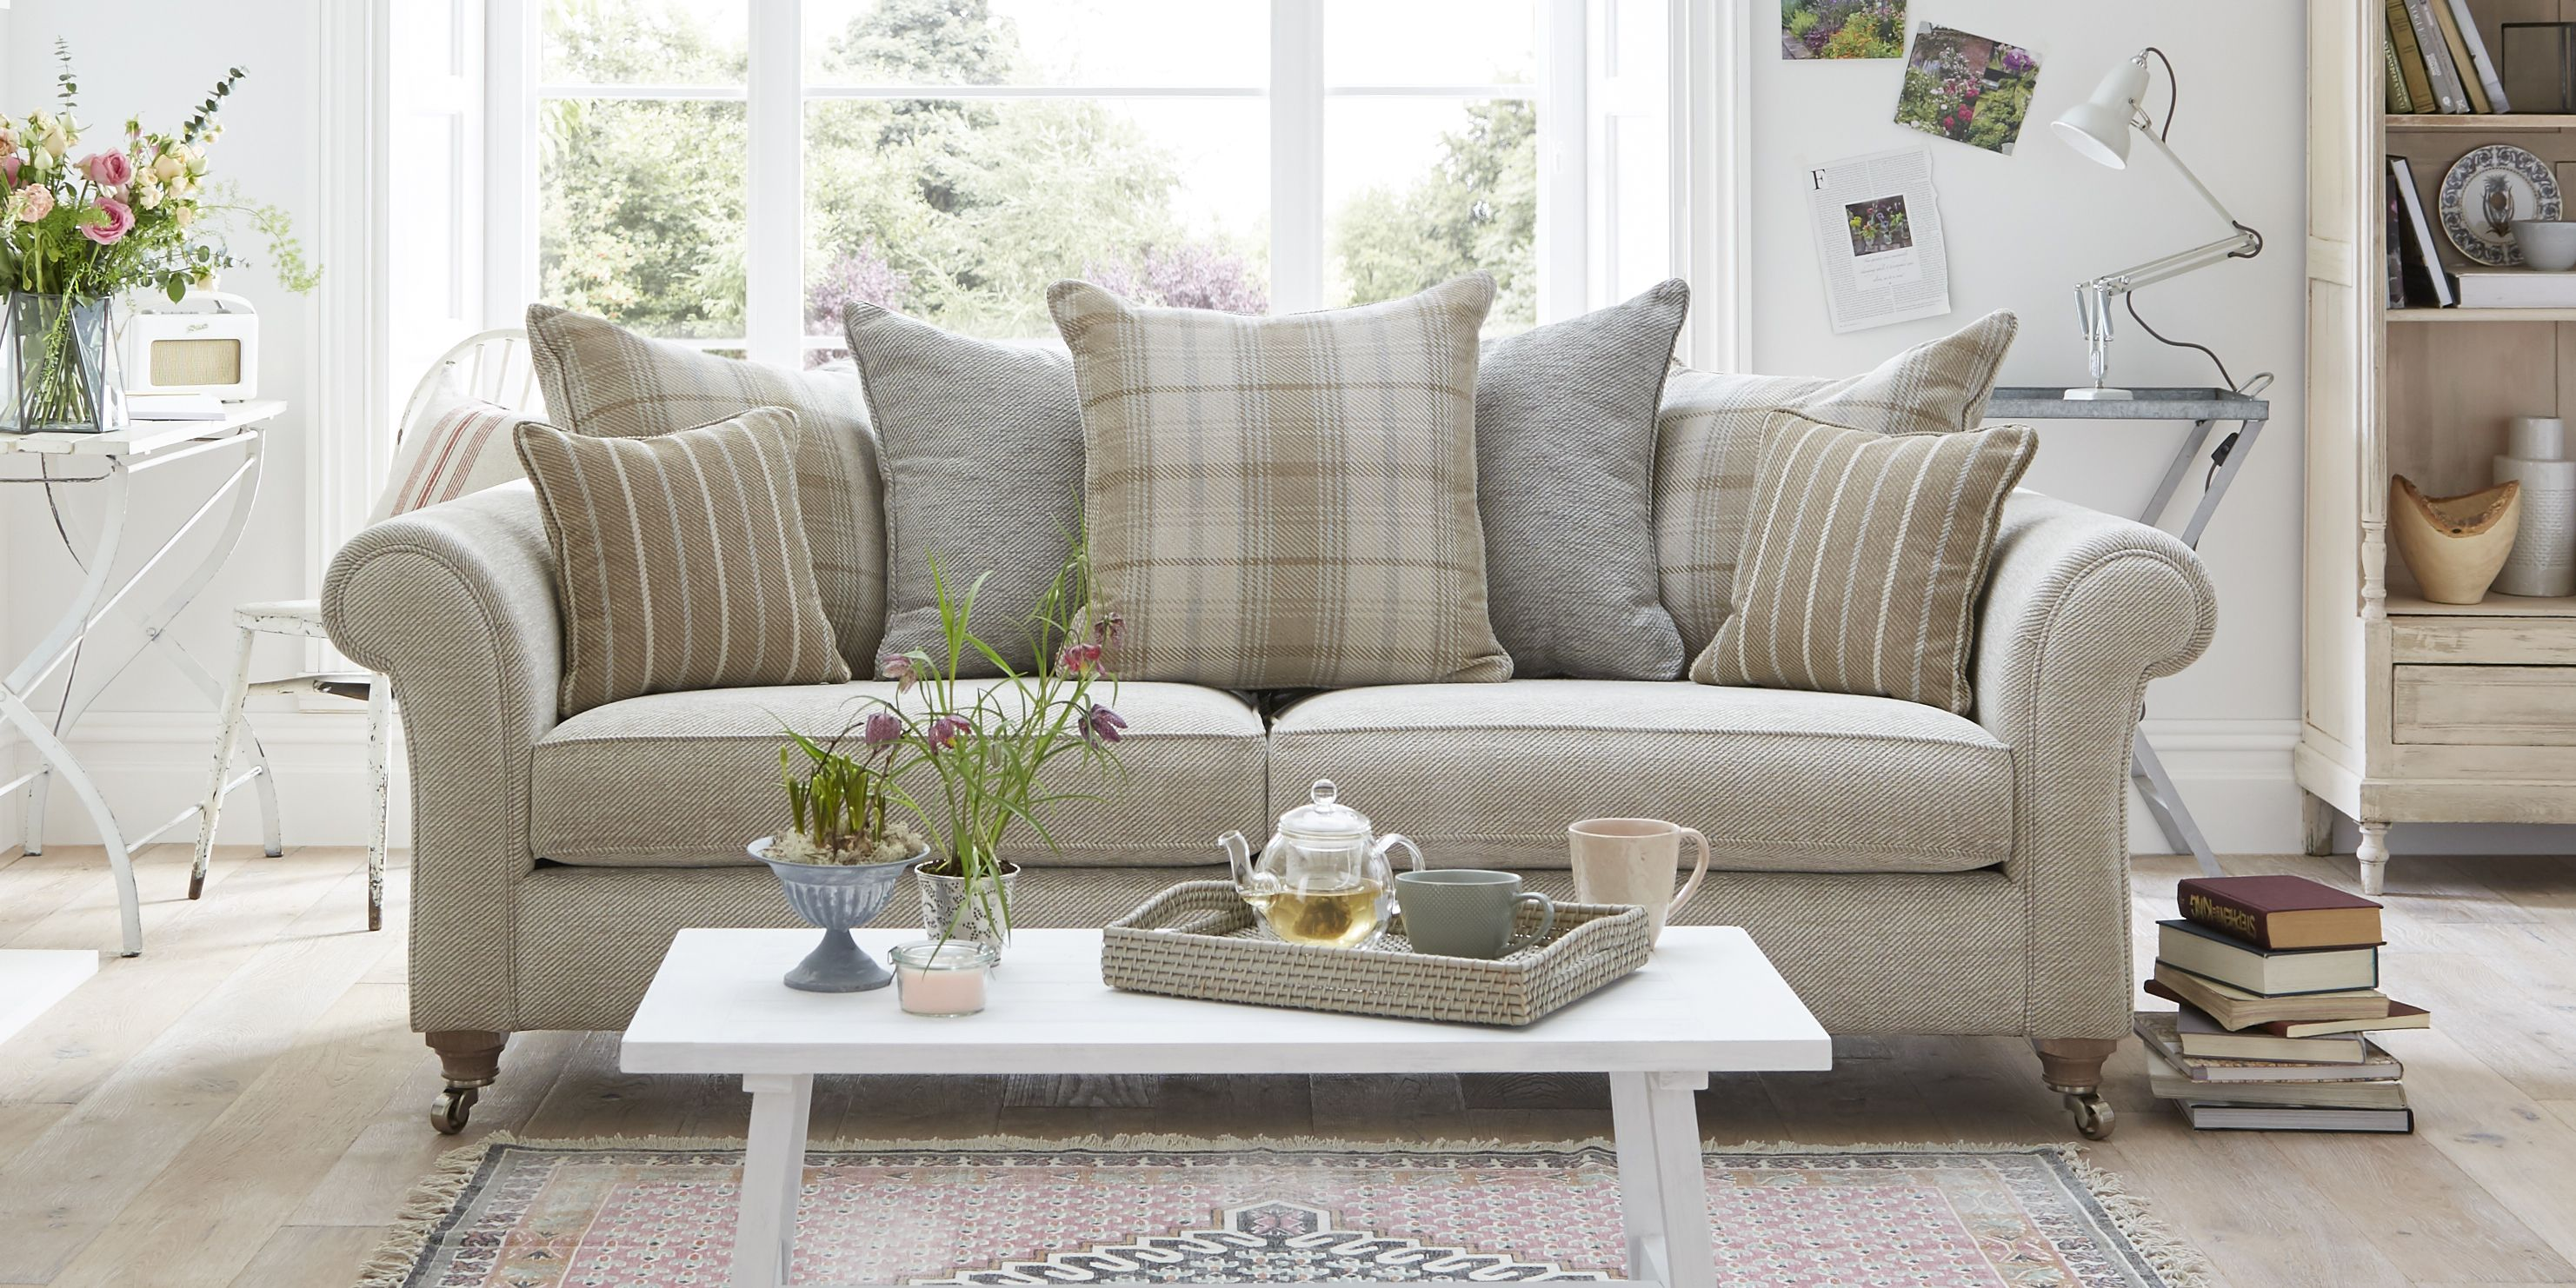 Country Living Morland Sofa Is Now At Dfs